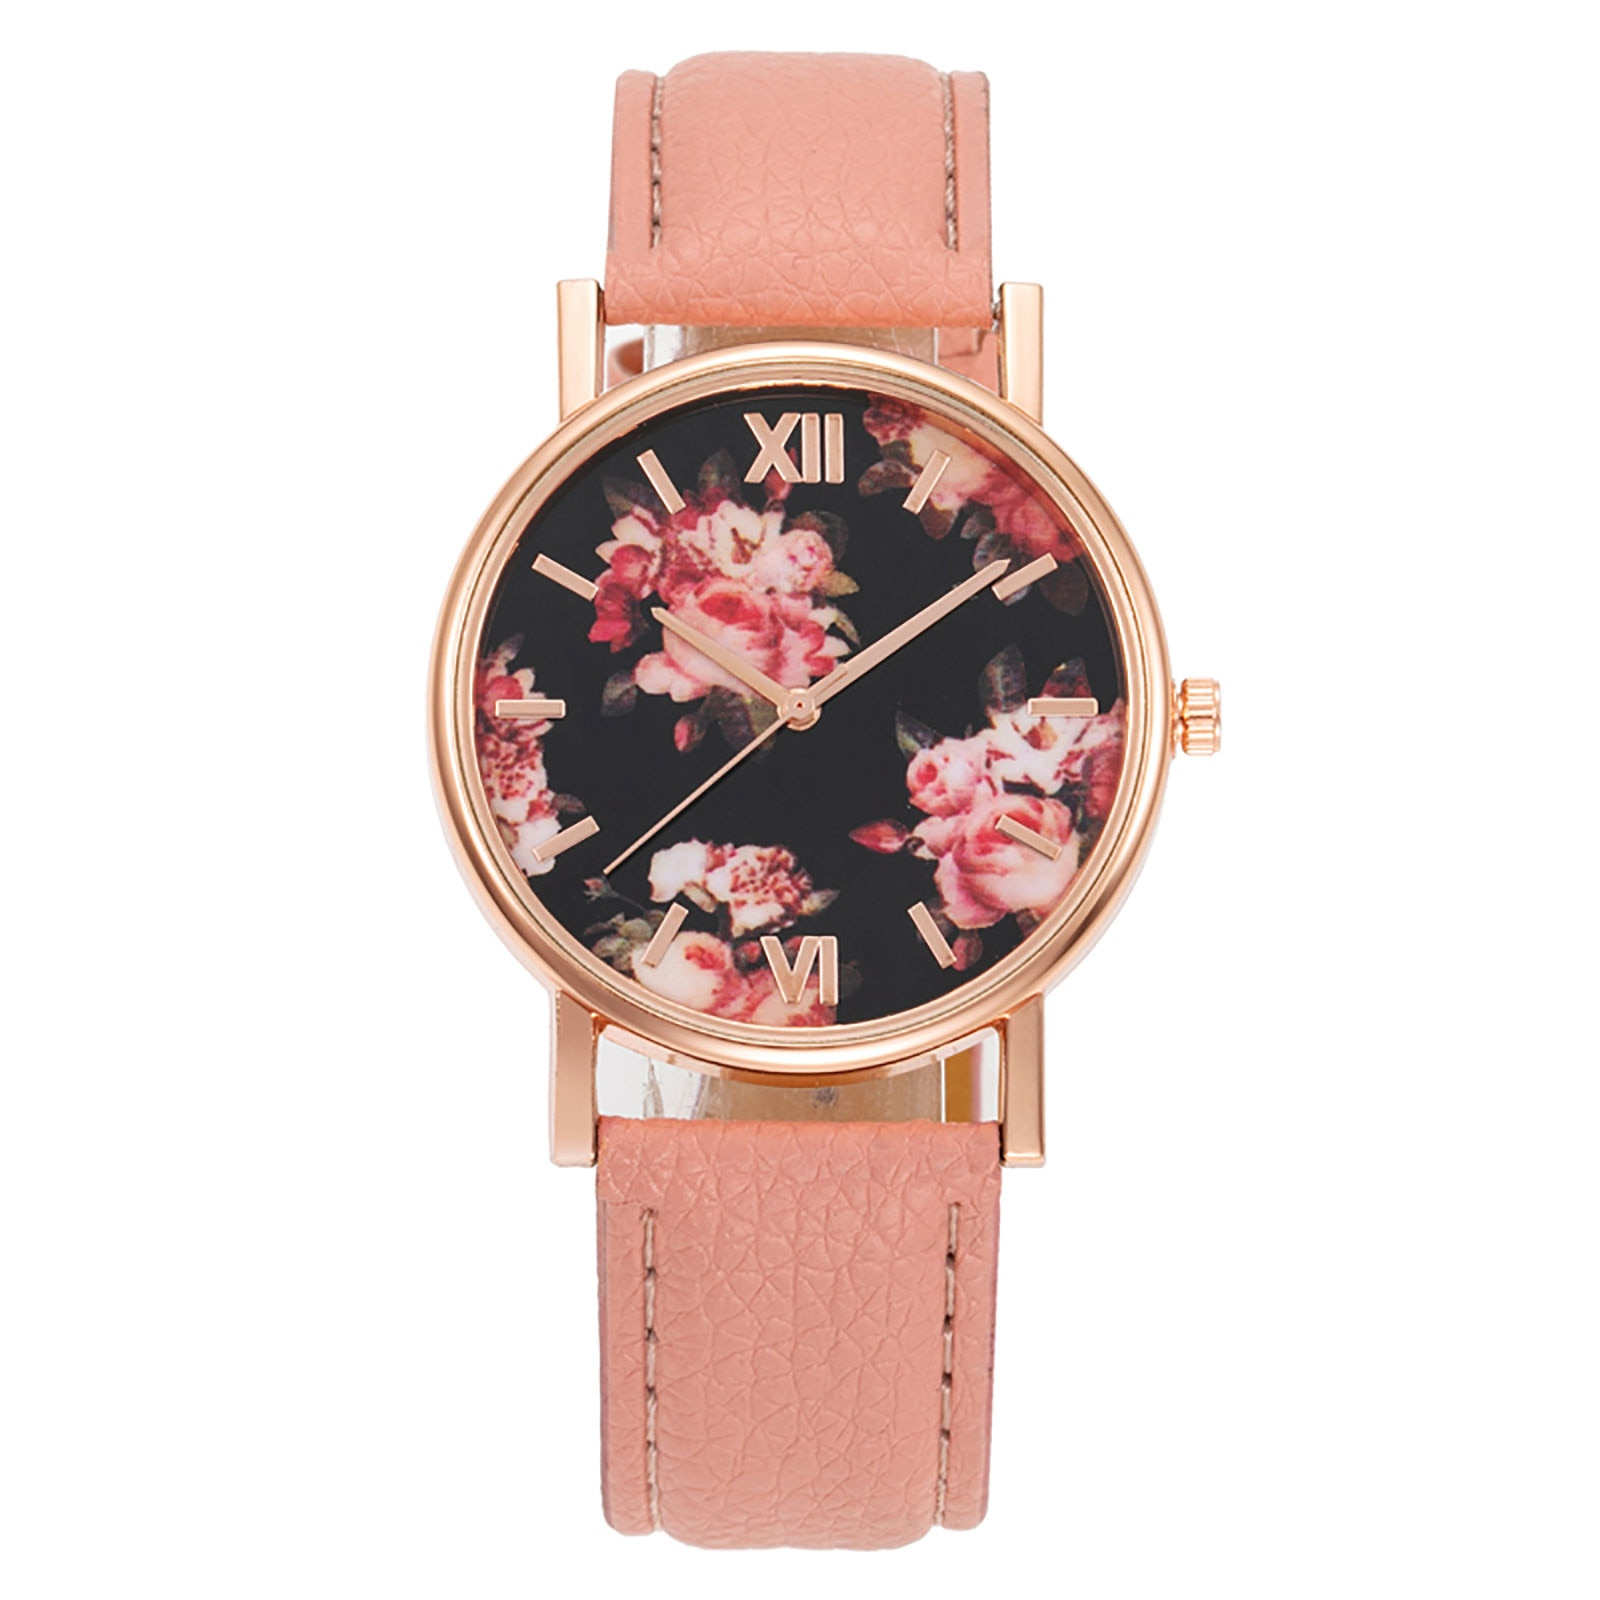 Women Watches Bracelet Retro Printing Watch Ladies Smart Watches Android Watch For Women 2021 Digital Wrist Watch For Ladies